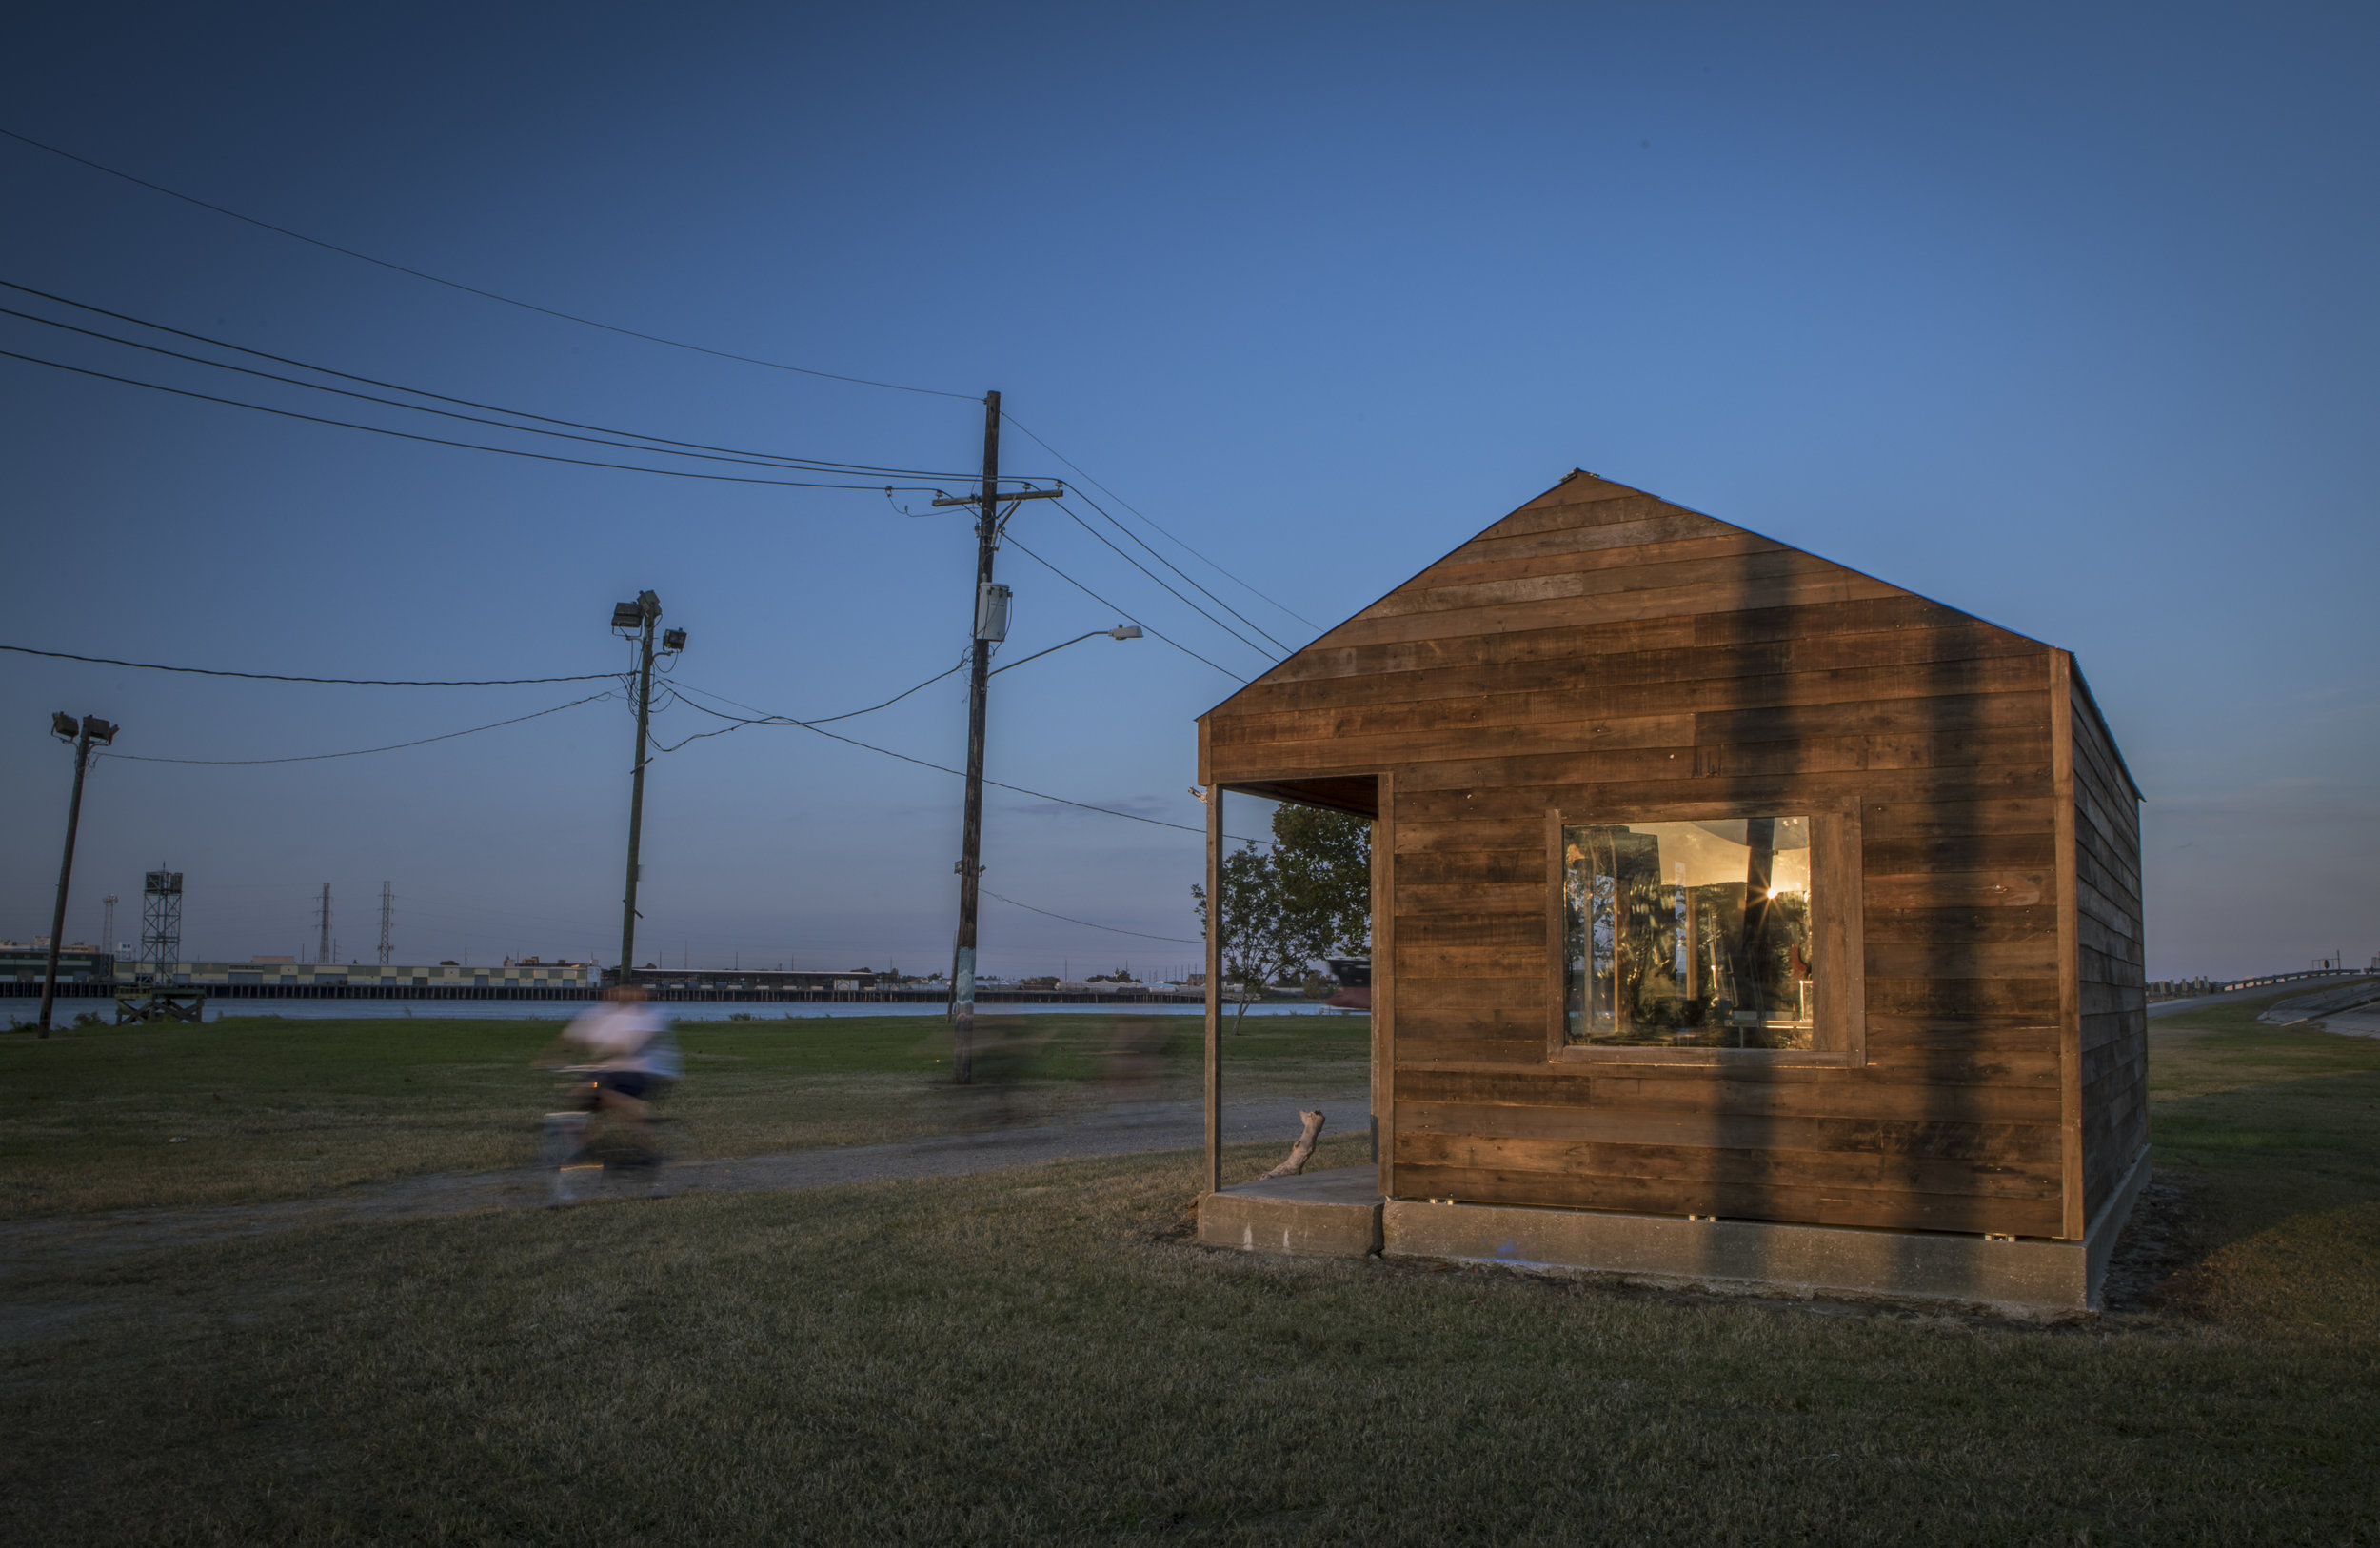 Mark Dion The Field Station of the Melancholy Marine Biologist, 2017 Installation View at Algiers Point for Prospect.4: The Lotus in Spite of the Swamp Photo © Crista Rock.jpg